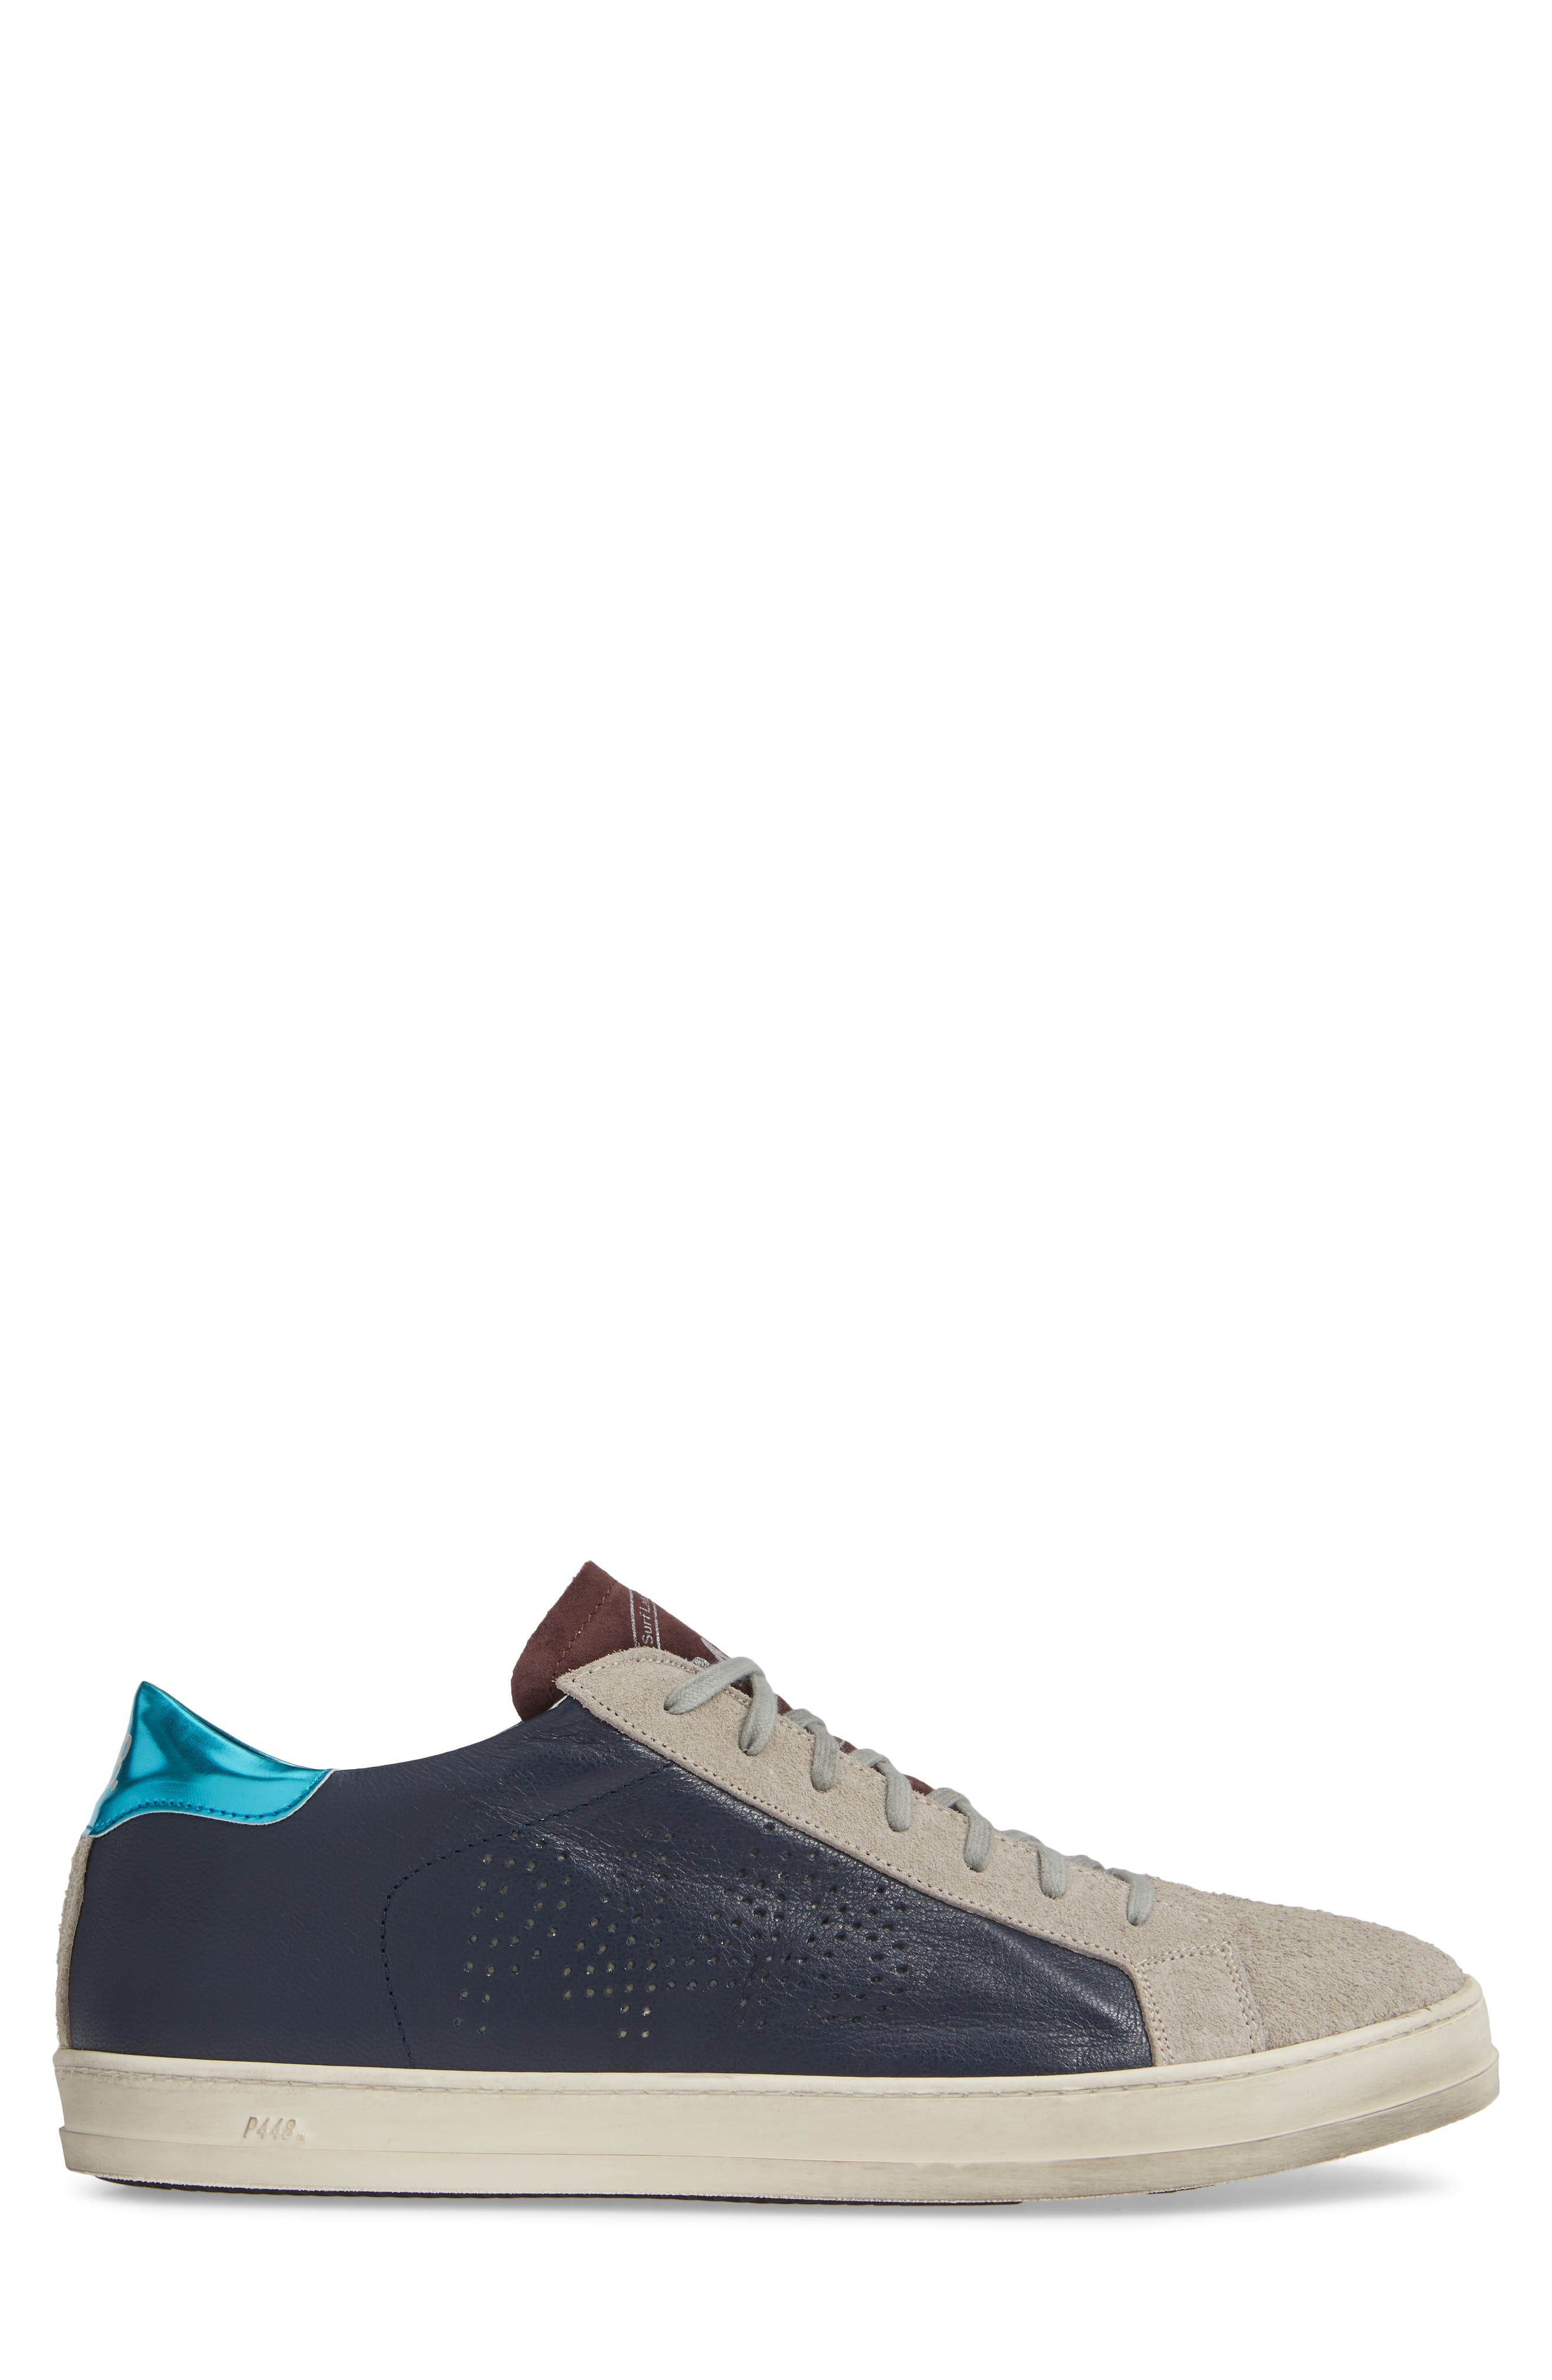 A8 John Sneaker,                             Alternate thumbnail 3, color,                             NAVY